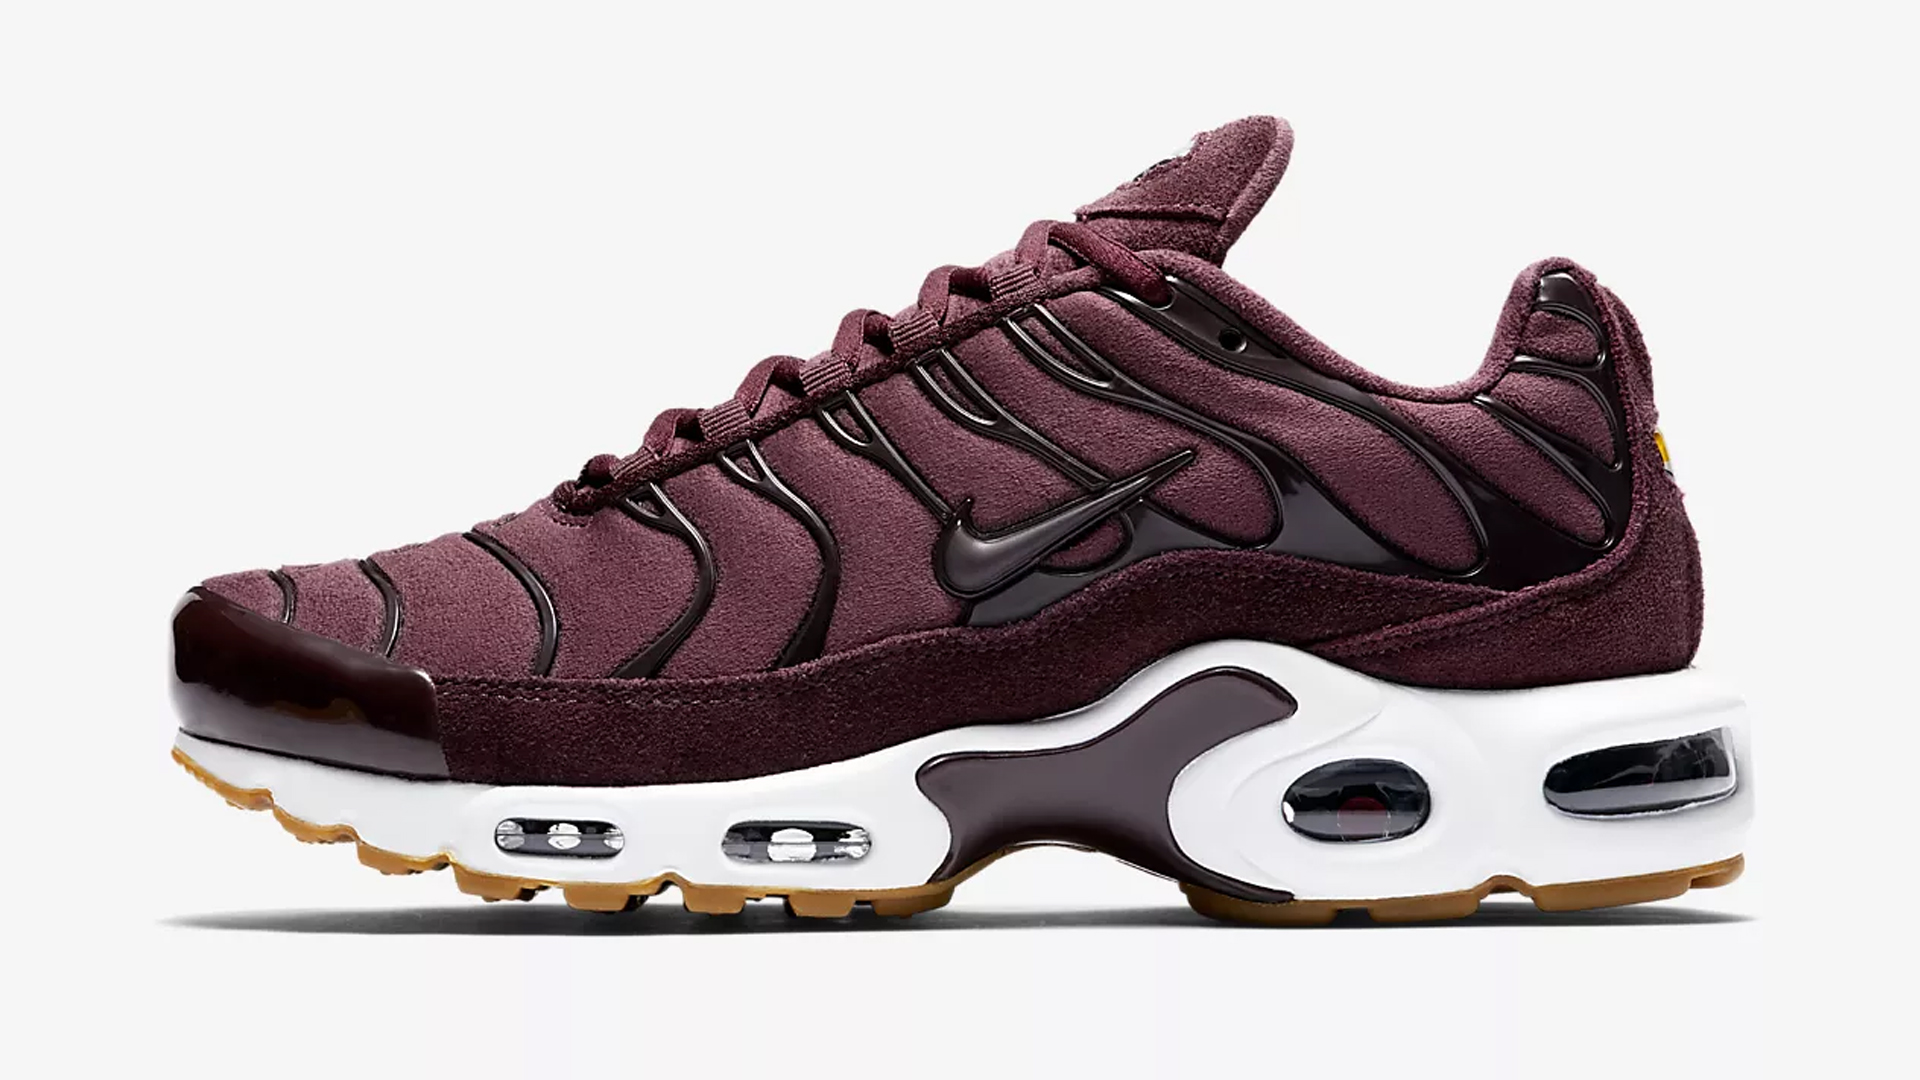 promo code d405b 813c5 womens nike tuned 1 air max plus se